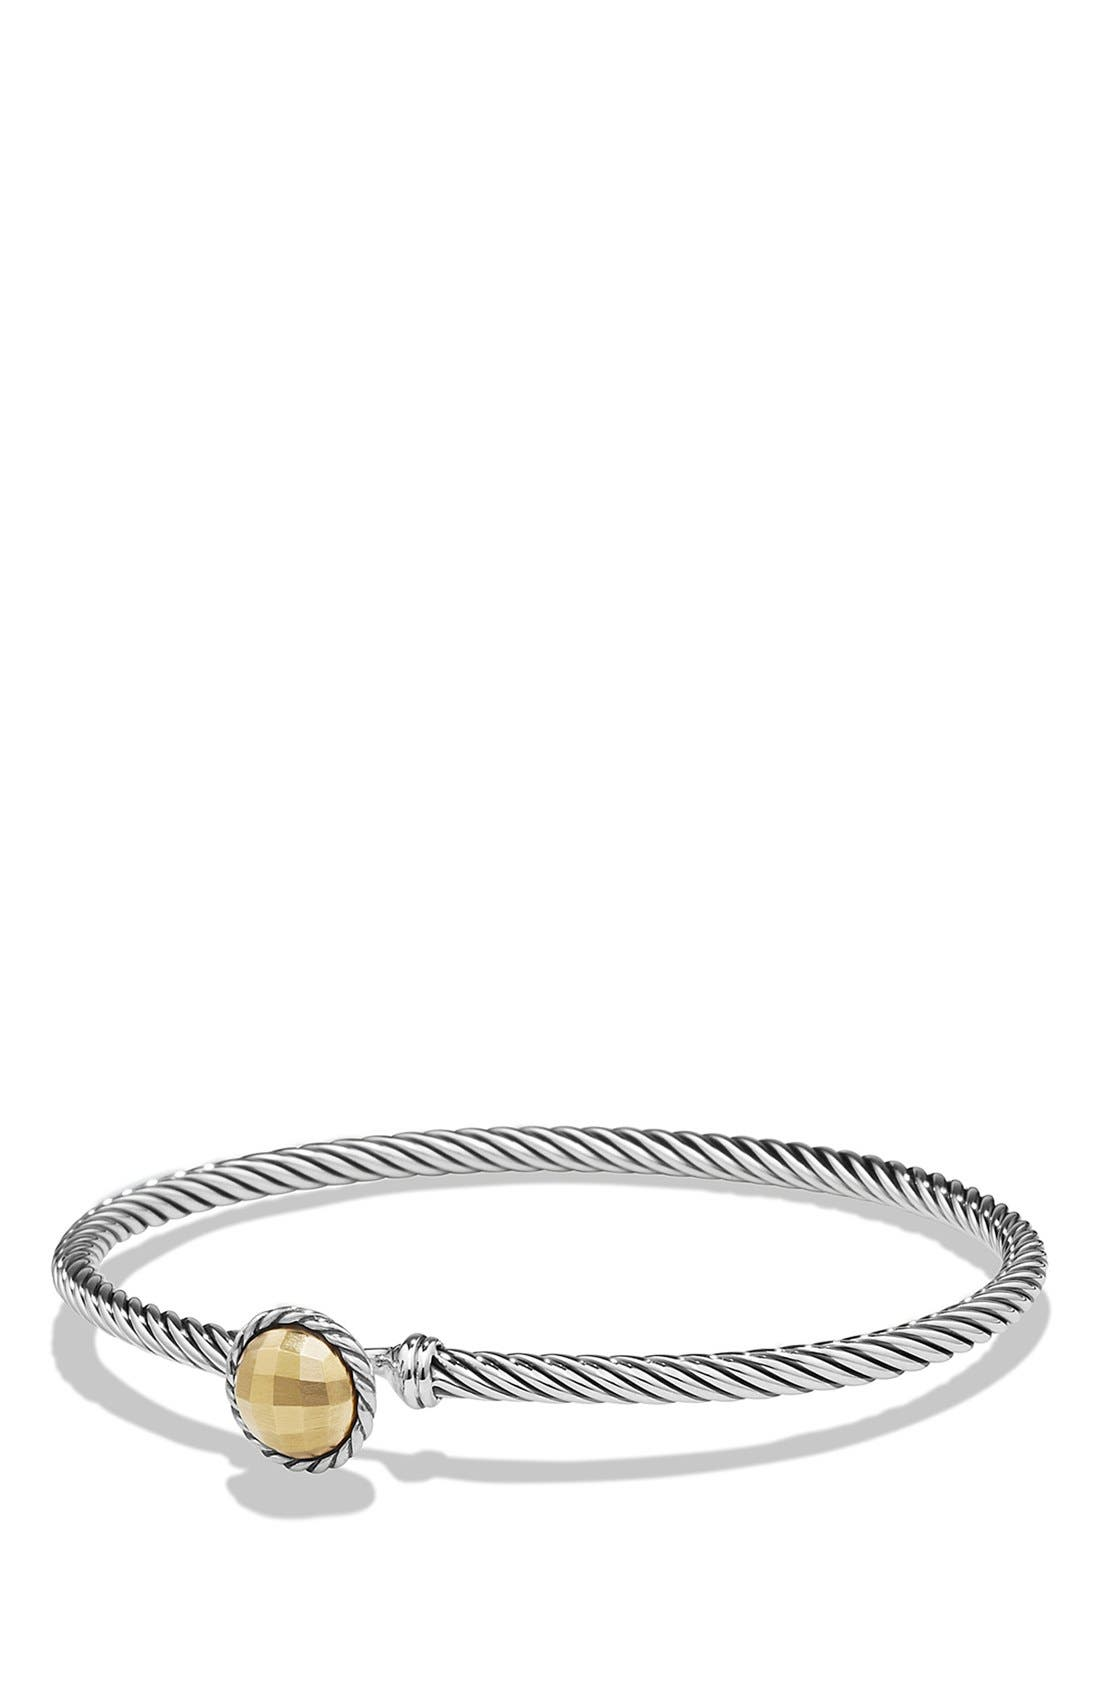 DAVID YURMAN 'Châtelaine'Bracelet with Gold Dome and 18KGold